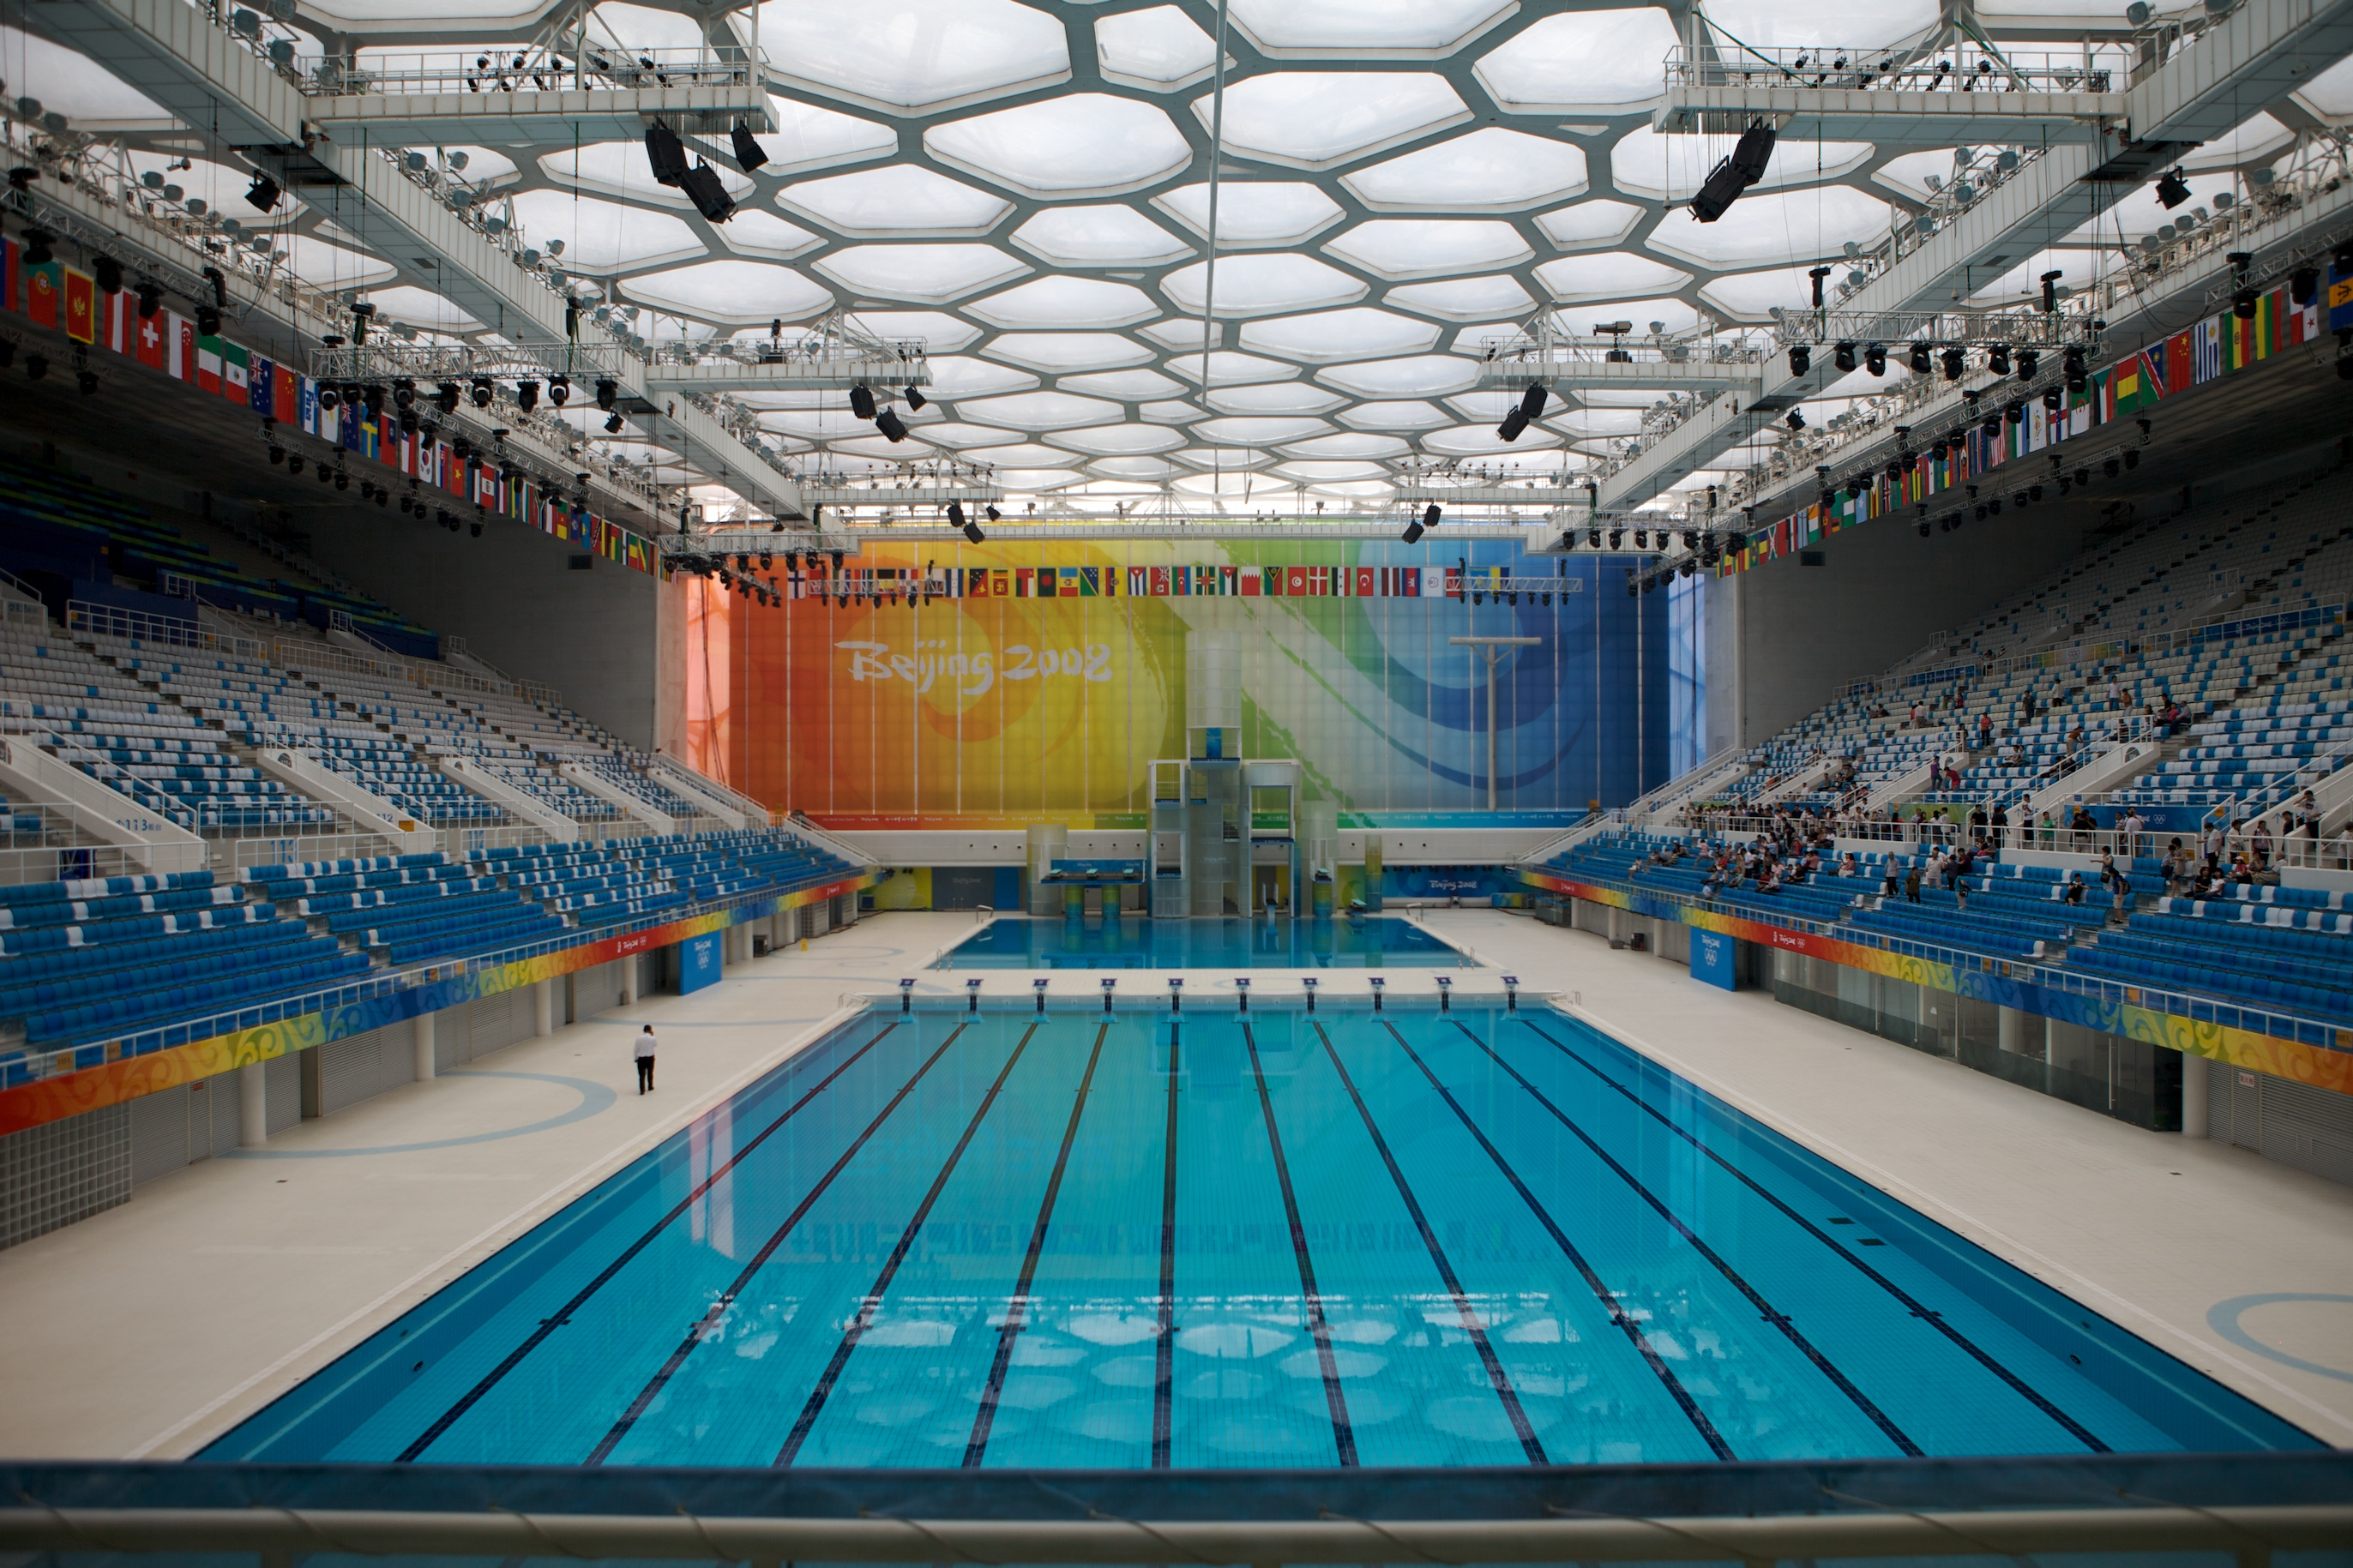 Olympic swimming pool flickr photo sharing for Beijing swimming pool olympics